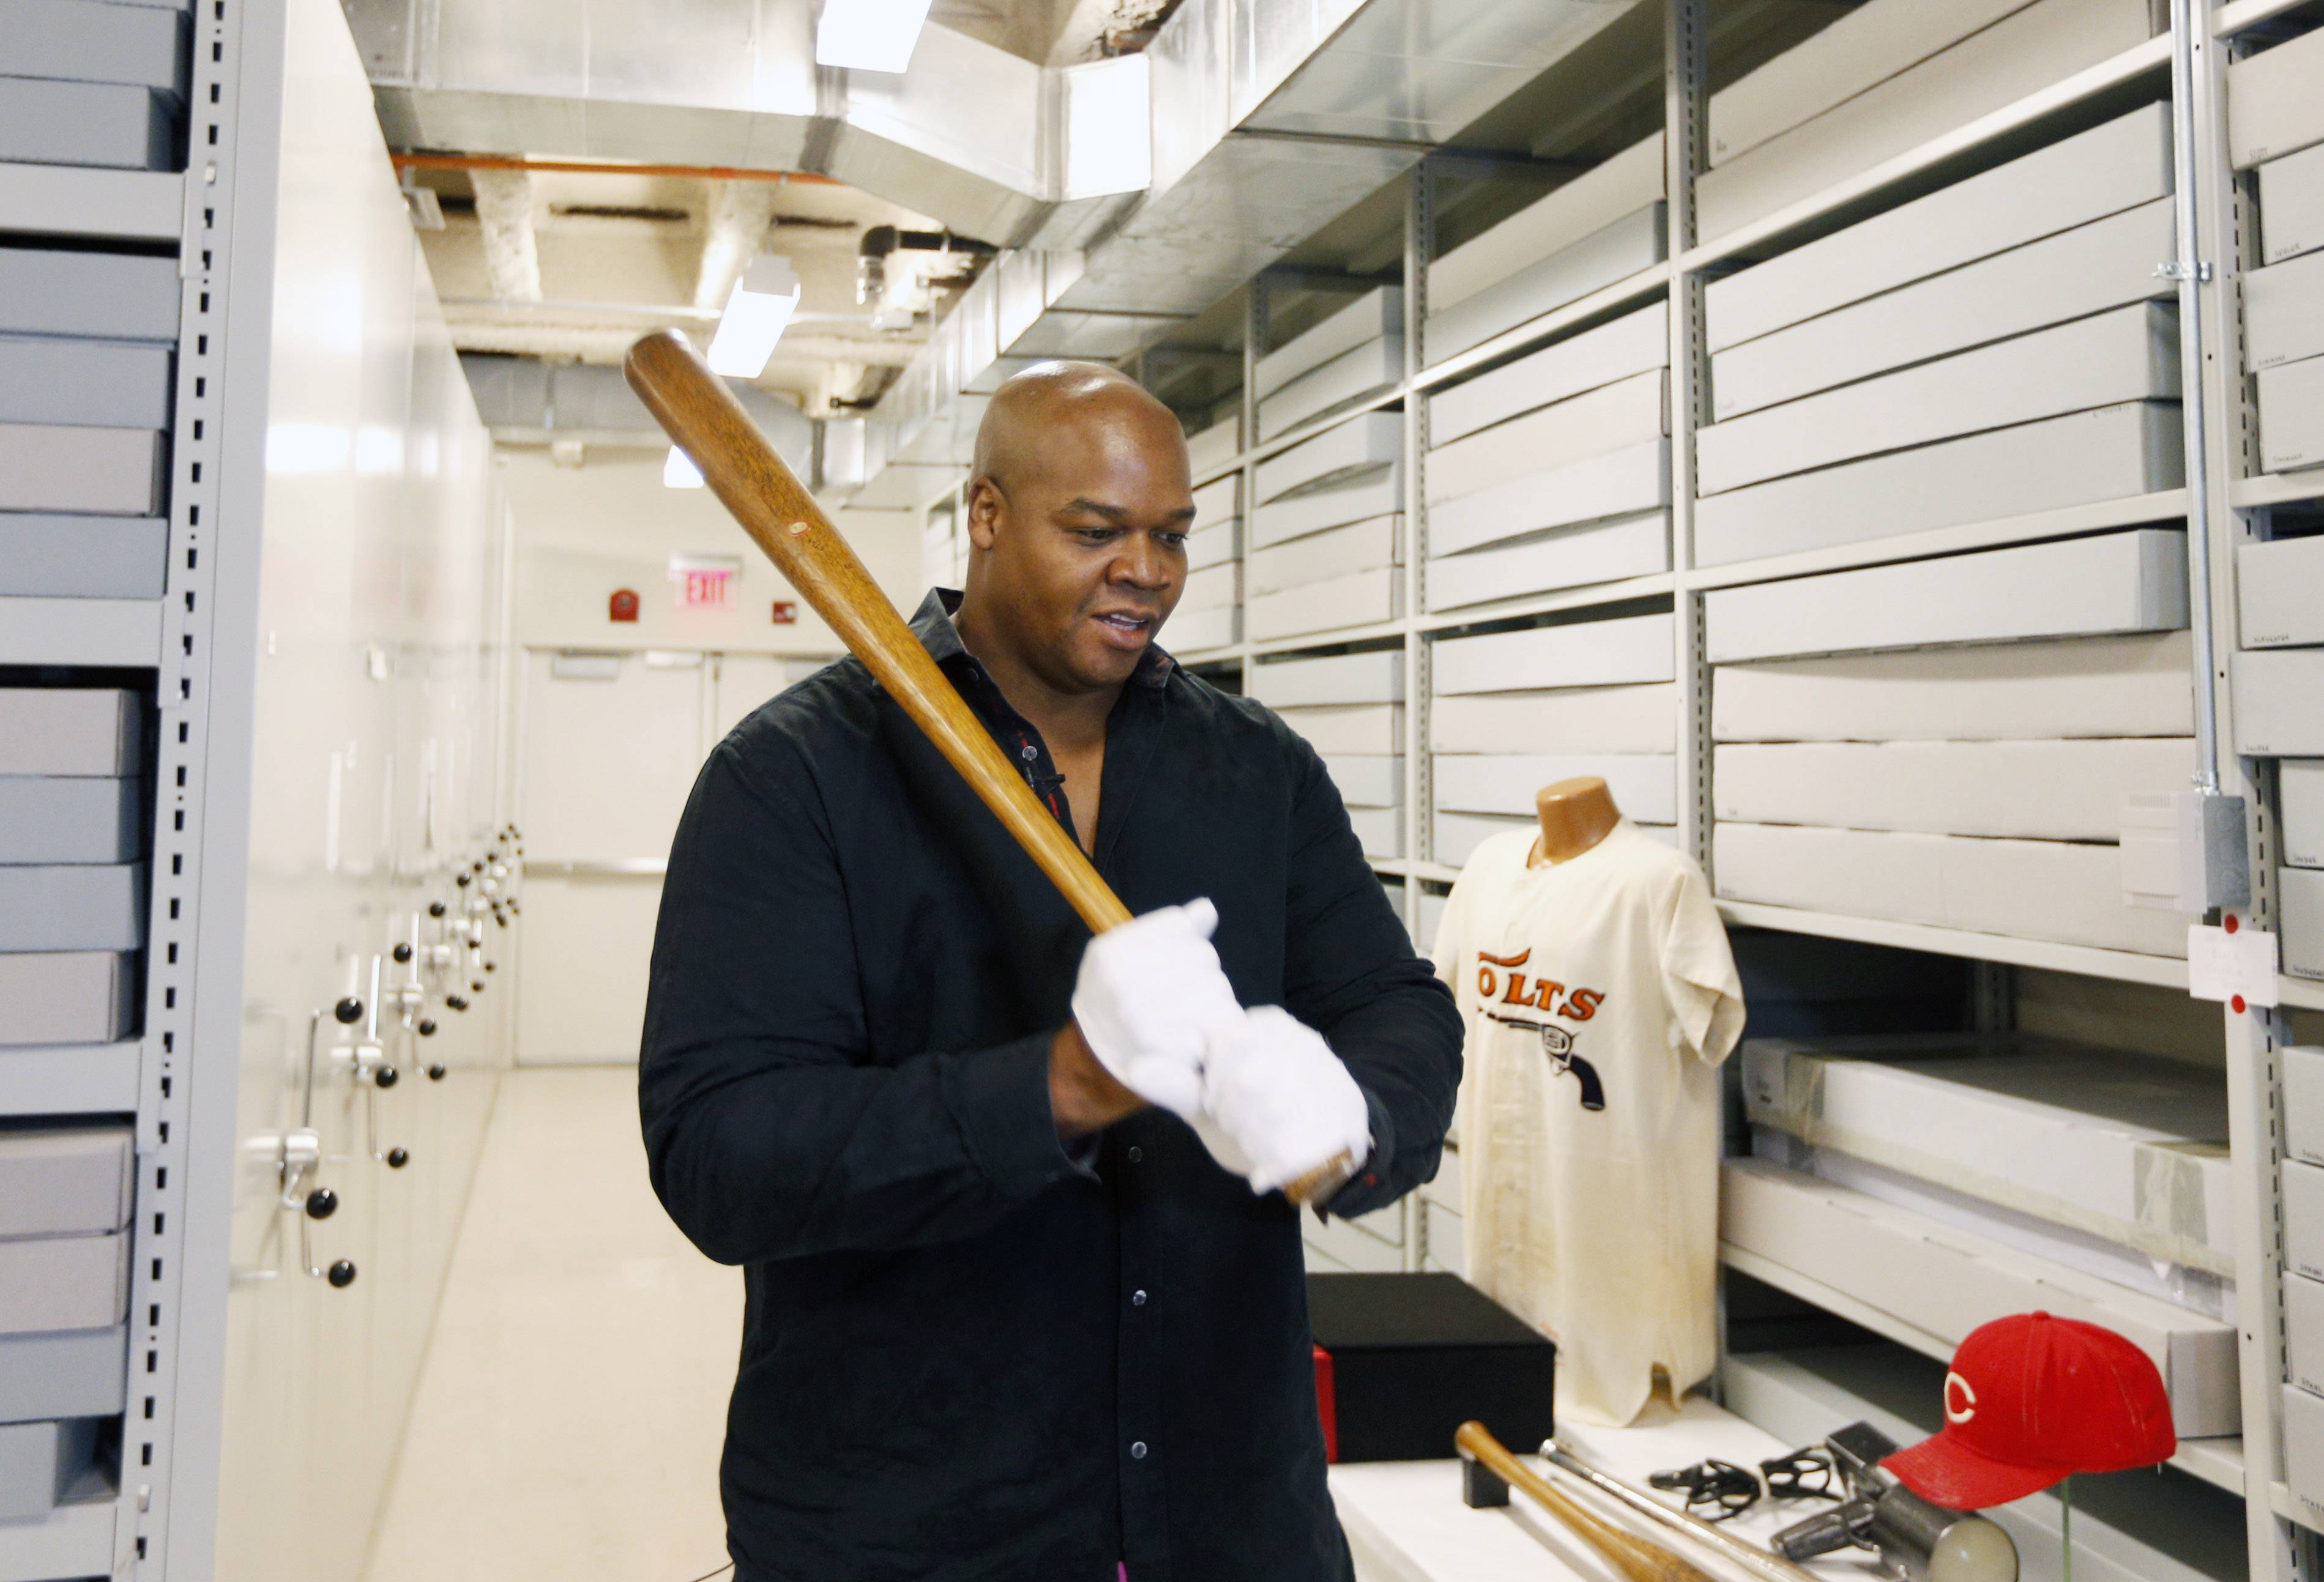 Former White Sox slugger Frank Thomas holds a Babe Ruth bat in the archives area Monday during his orientation visit at the Baseball Hall of Fame in Cooperstown, N.Y. Thomas will be inducted to the hall in July.